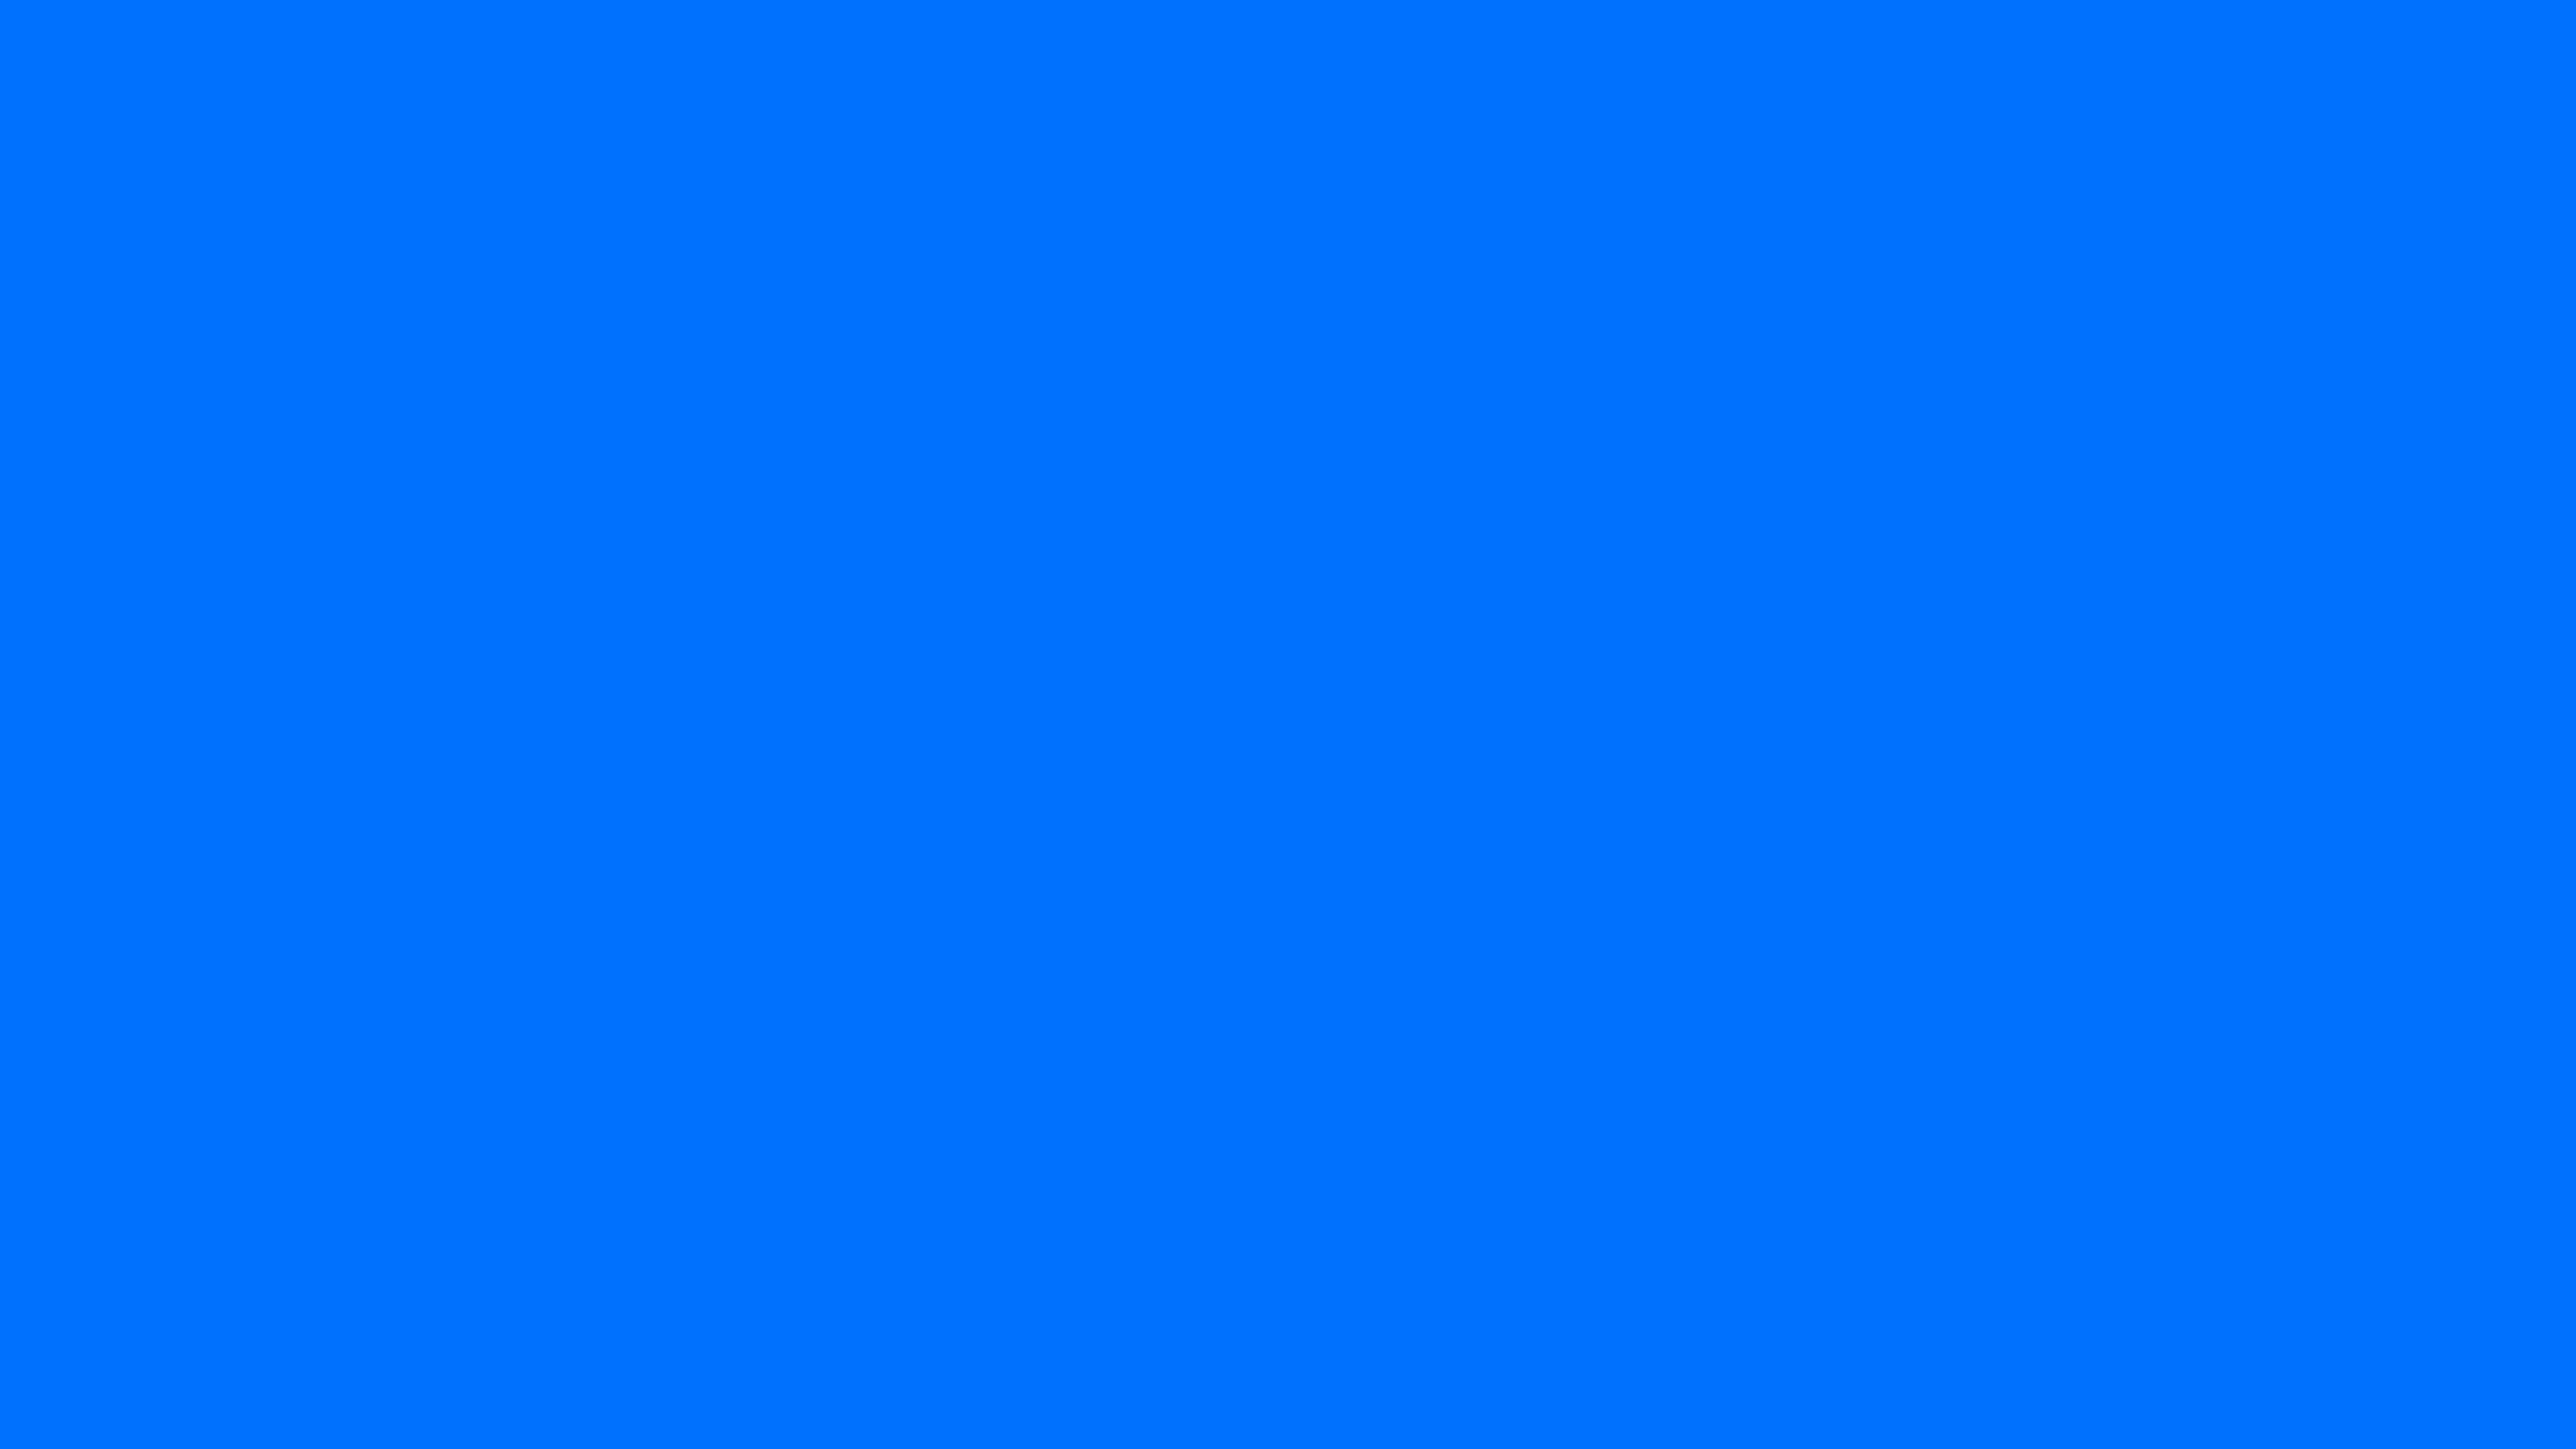 3840x2160 Brandeis Blue Solid Color Background